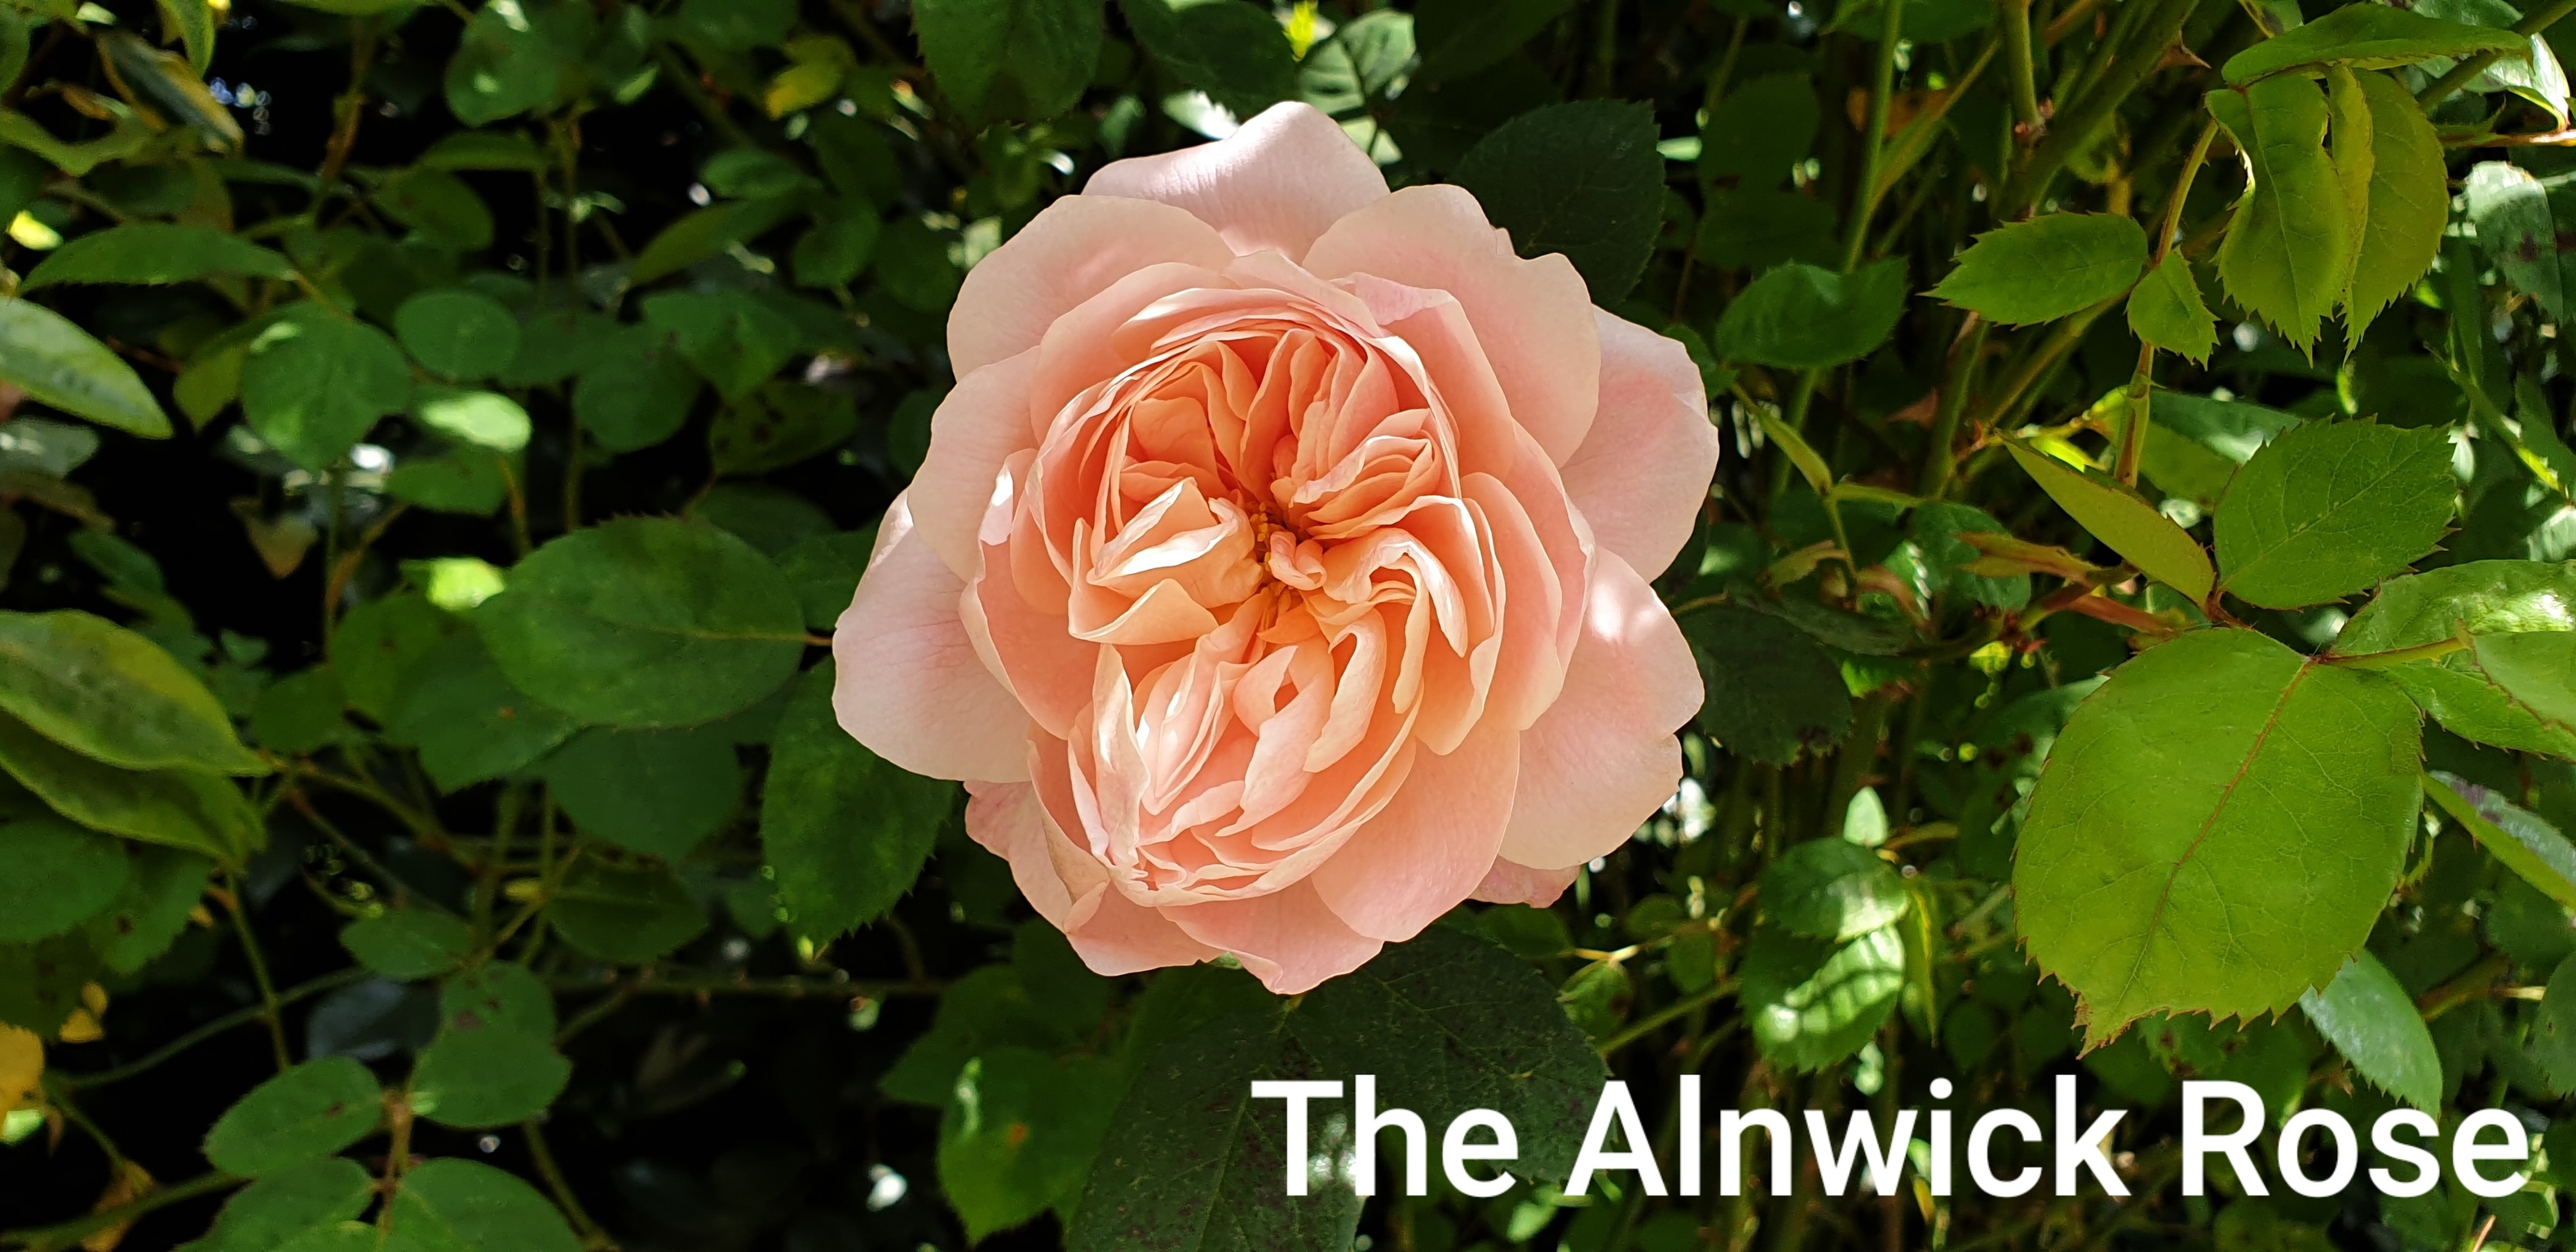 An Alnwick Rose in the Buckingham Palace gardens